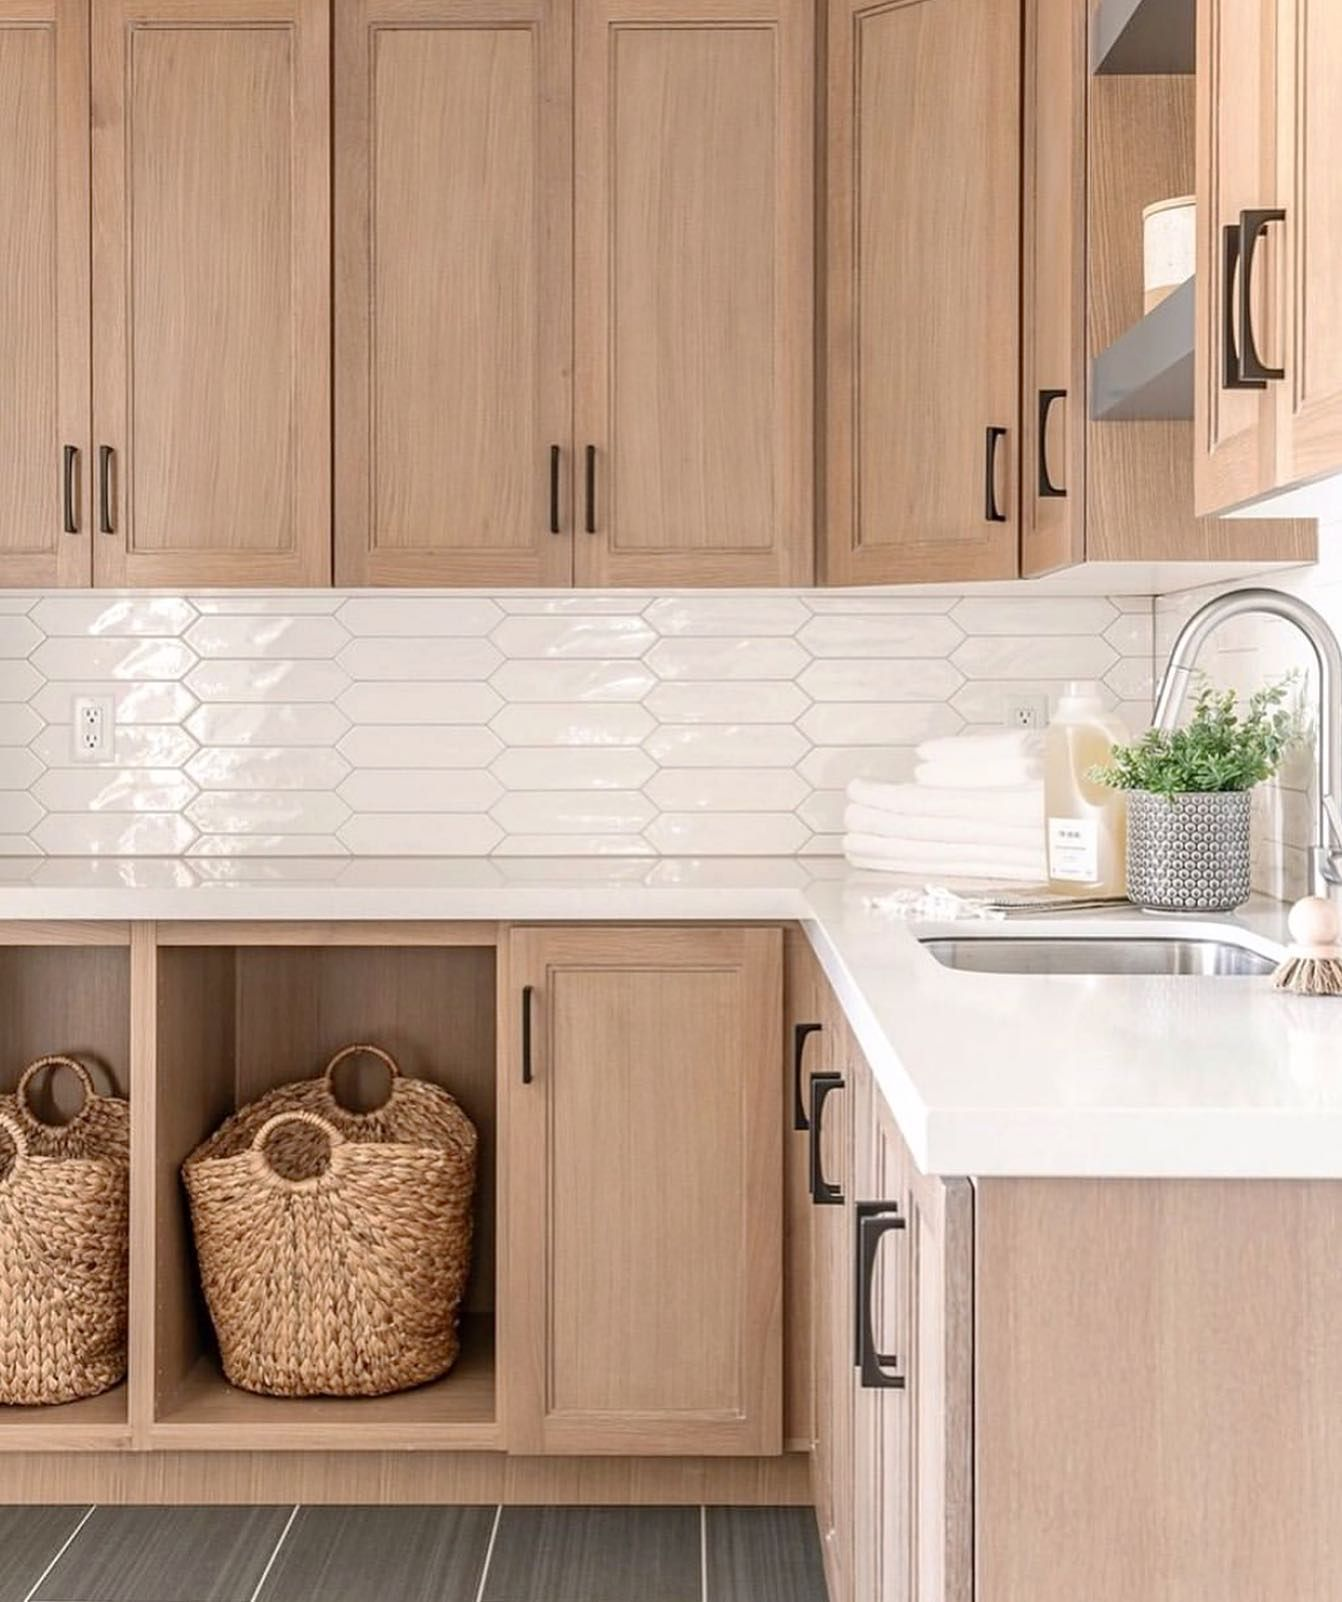 Homeowners Love The Look Of Wood And Natural Cabinets Are Back In A Big Way Designed By Remedy F White Oak Kitchen Oak Kitchen Cabinets Natural Wood Kitchen